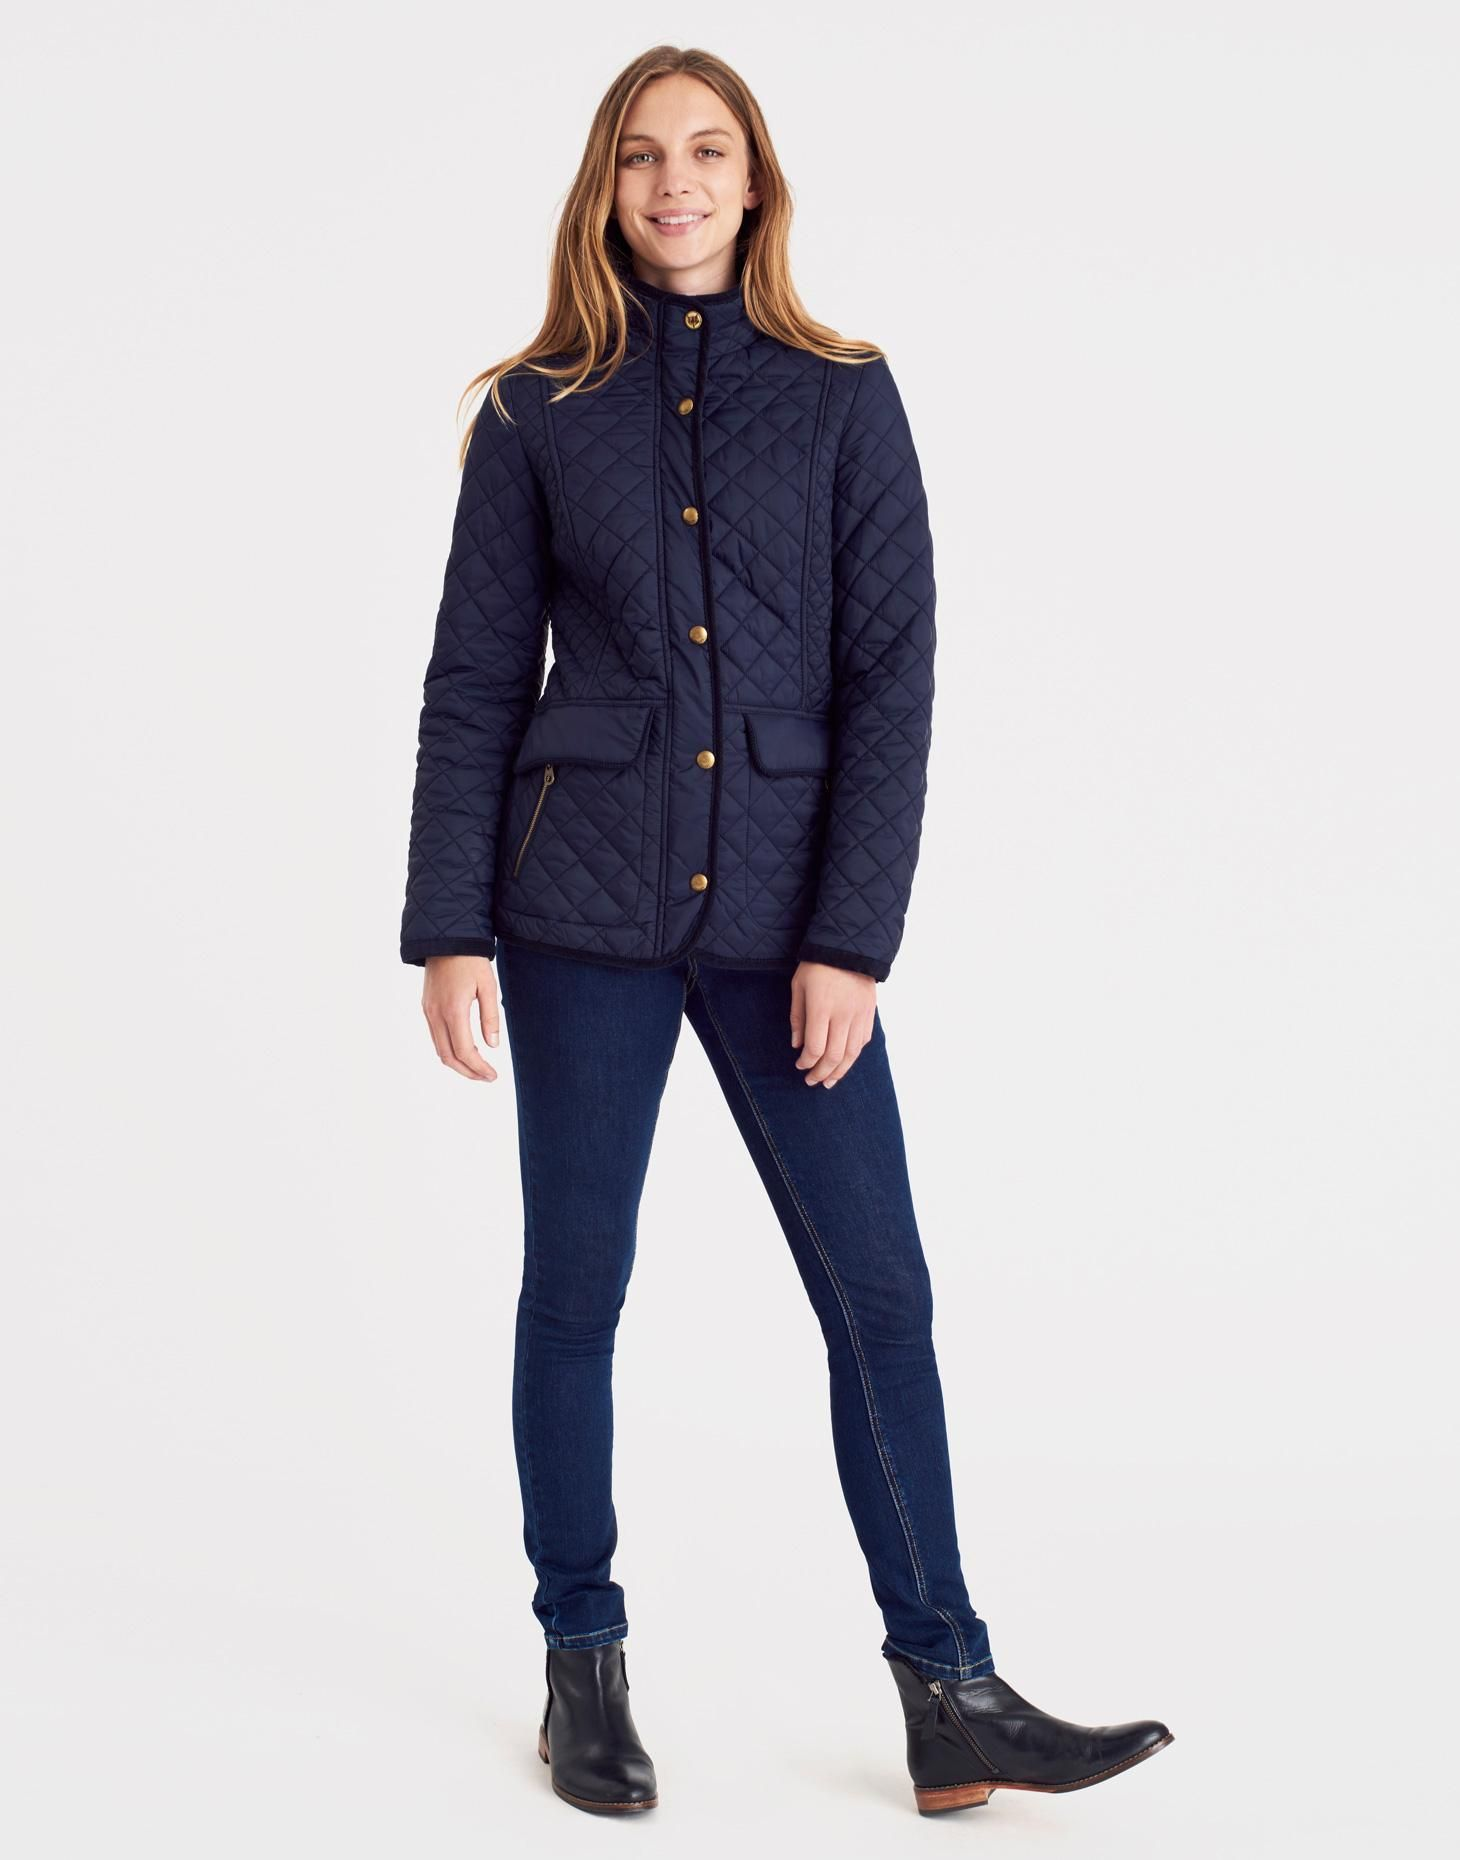 Newdale Quilted Jacket Clothes Pinterest Navy Quilt Quilted